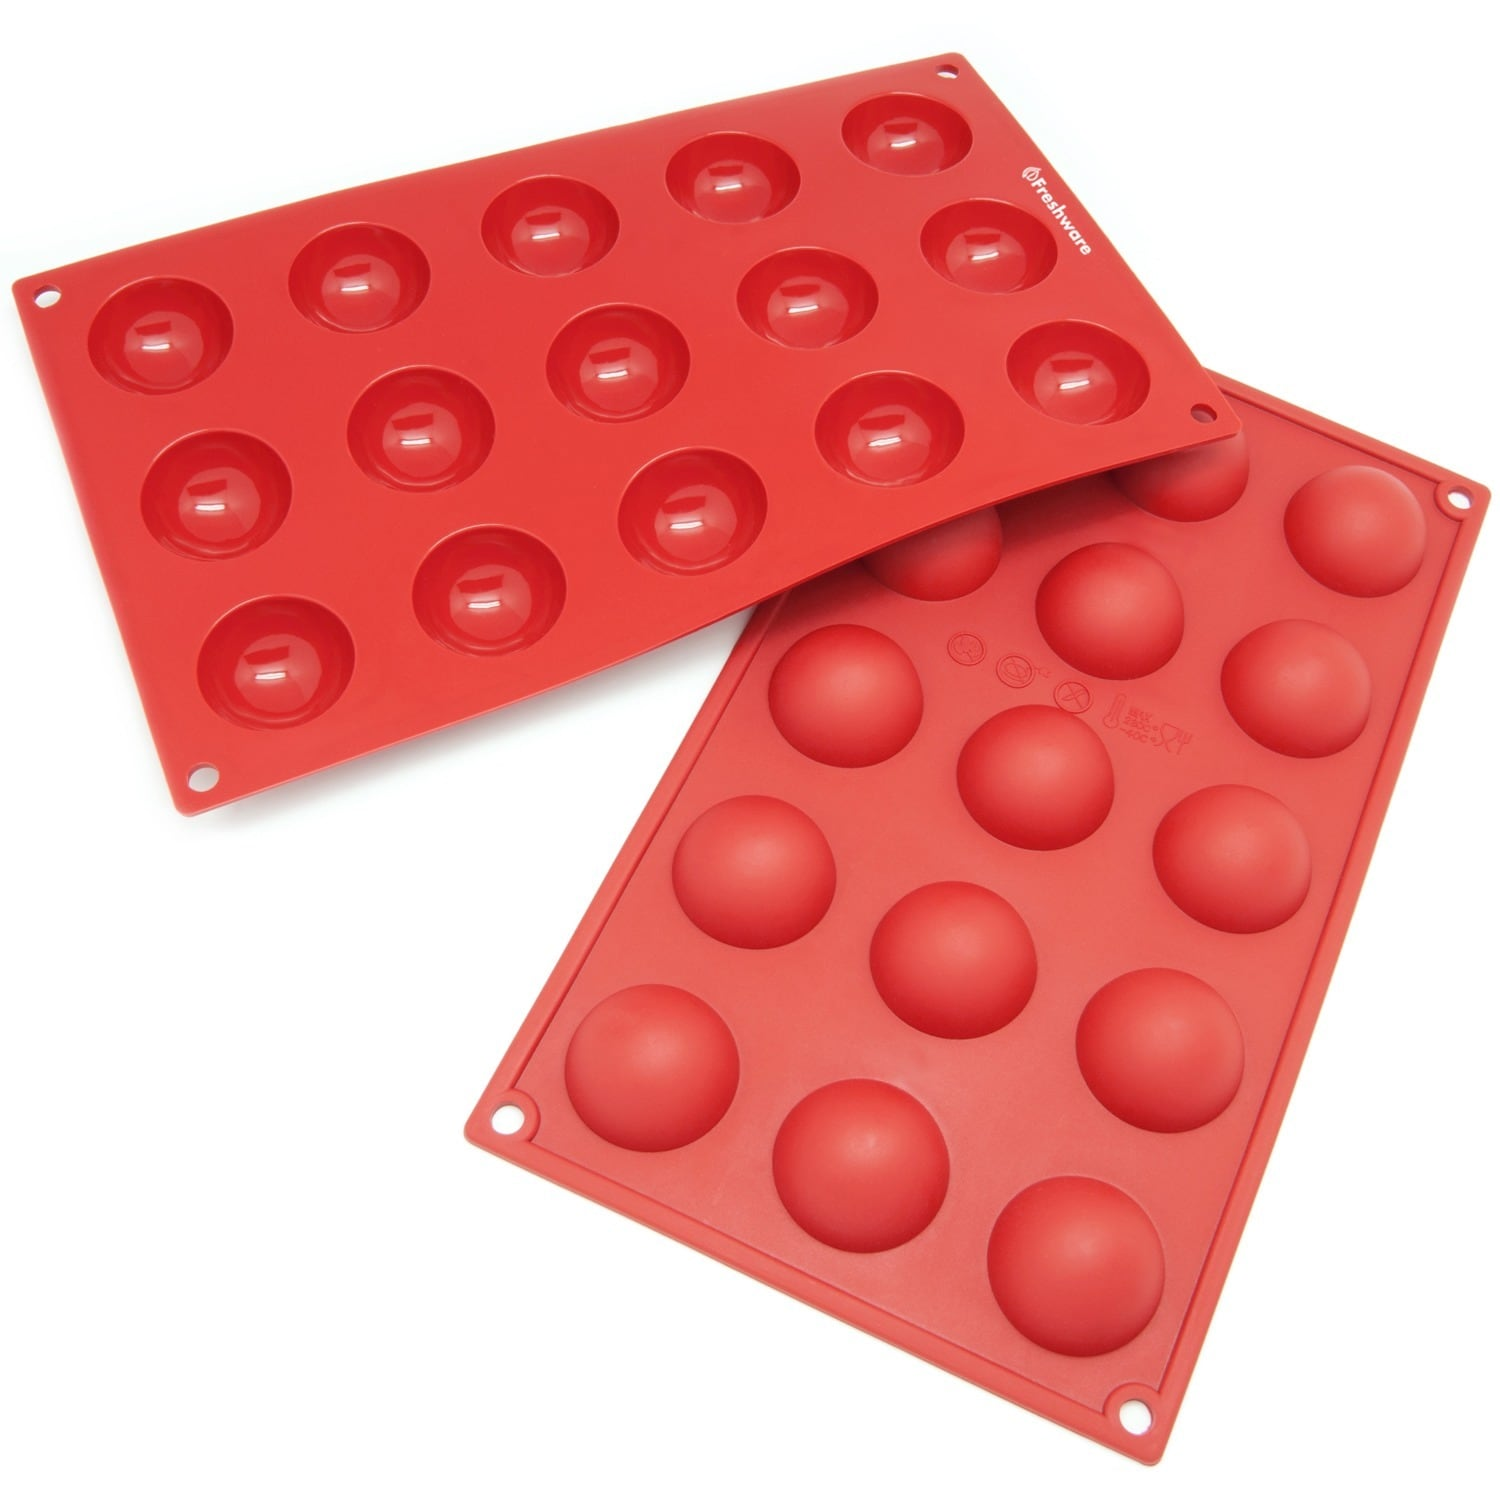 Freshware 15 Cavity Mini Half Sphere Cake Silicone Mold Baking Pans Pack Of 2 Overstock 5992395